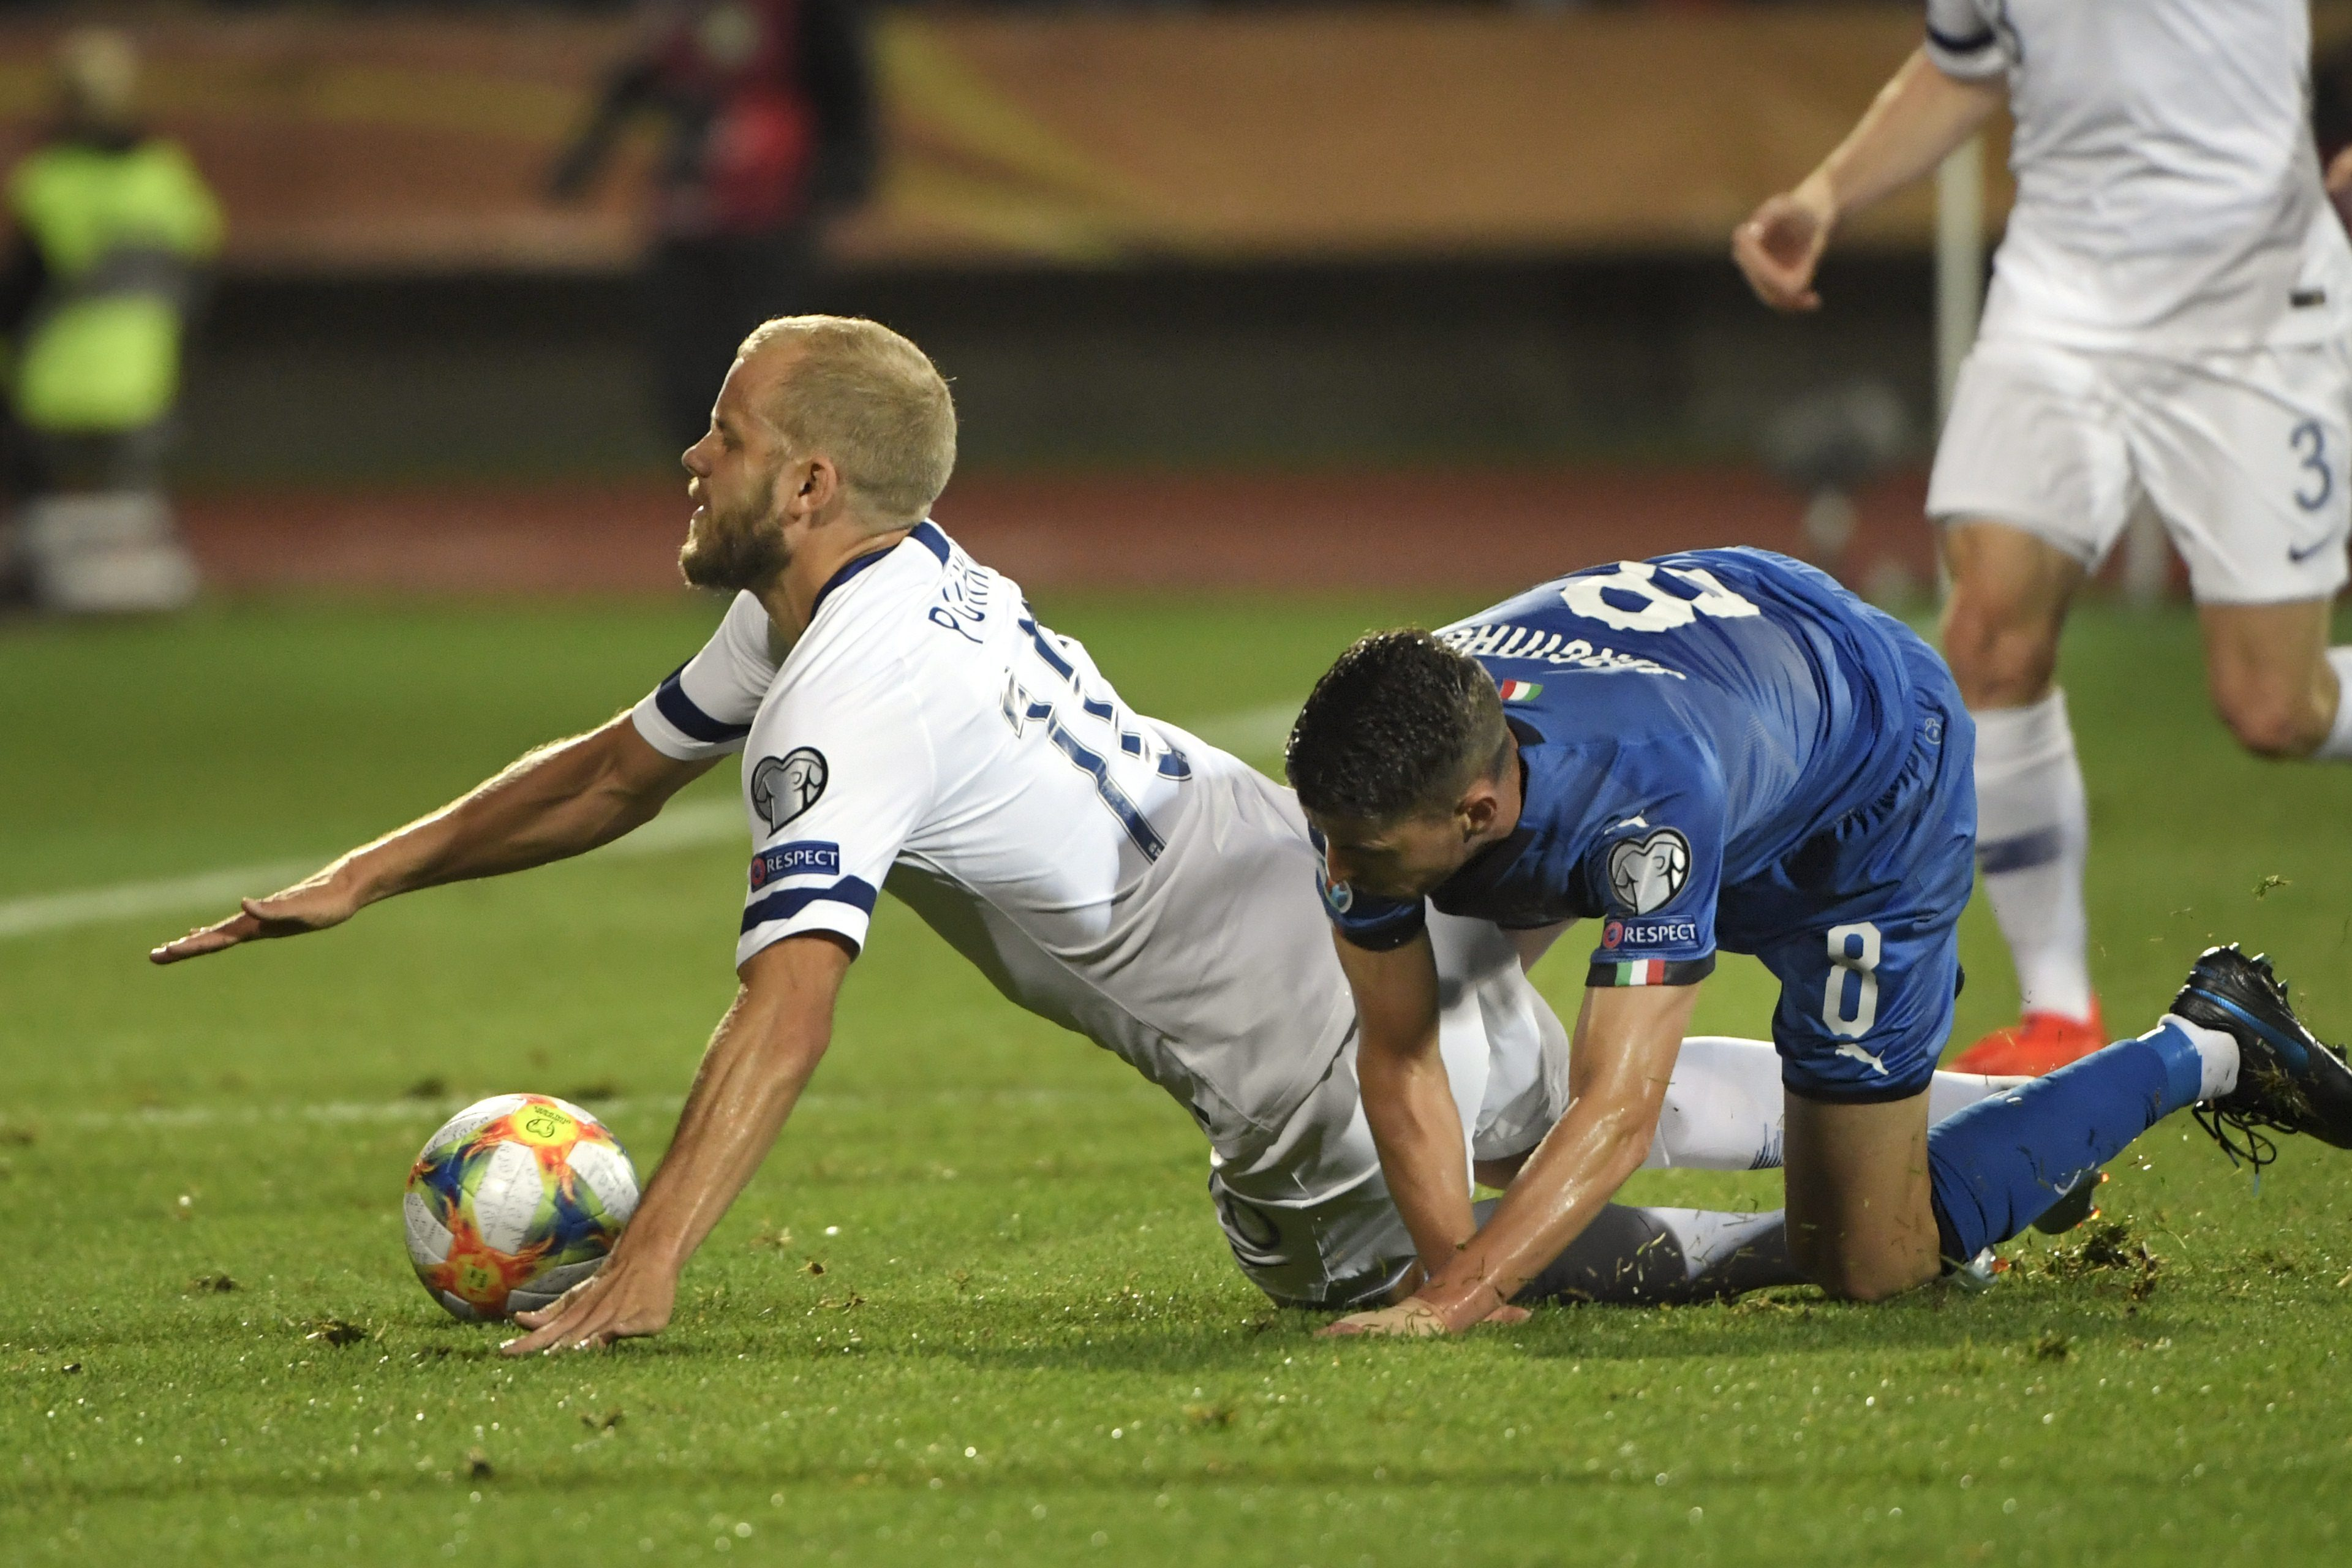 Pukki scores again but Italy stays perfect in Finland